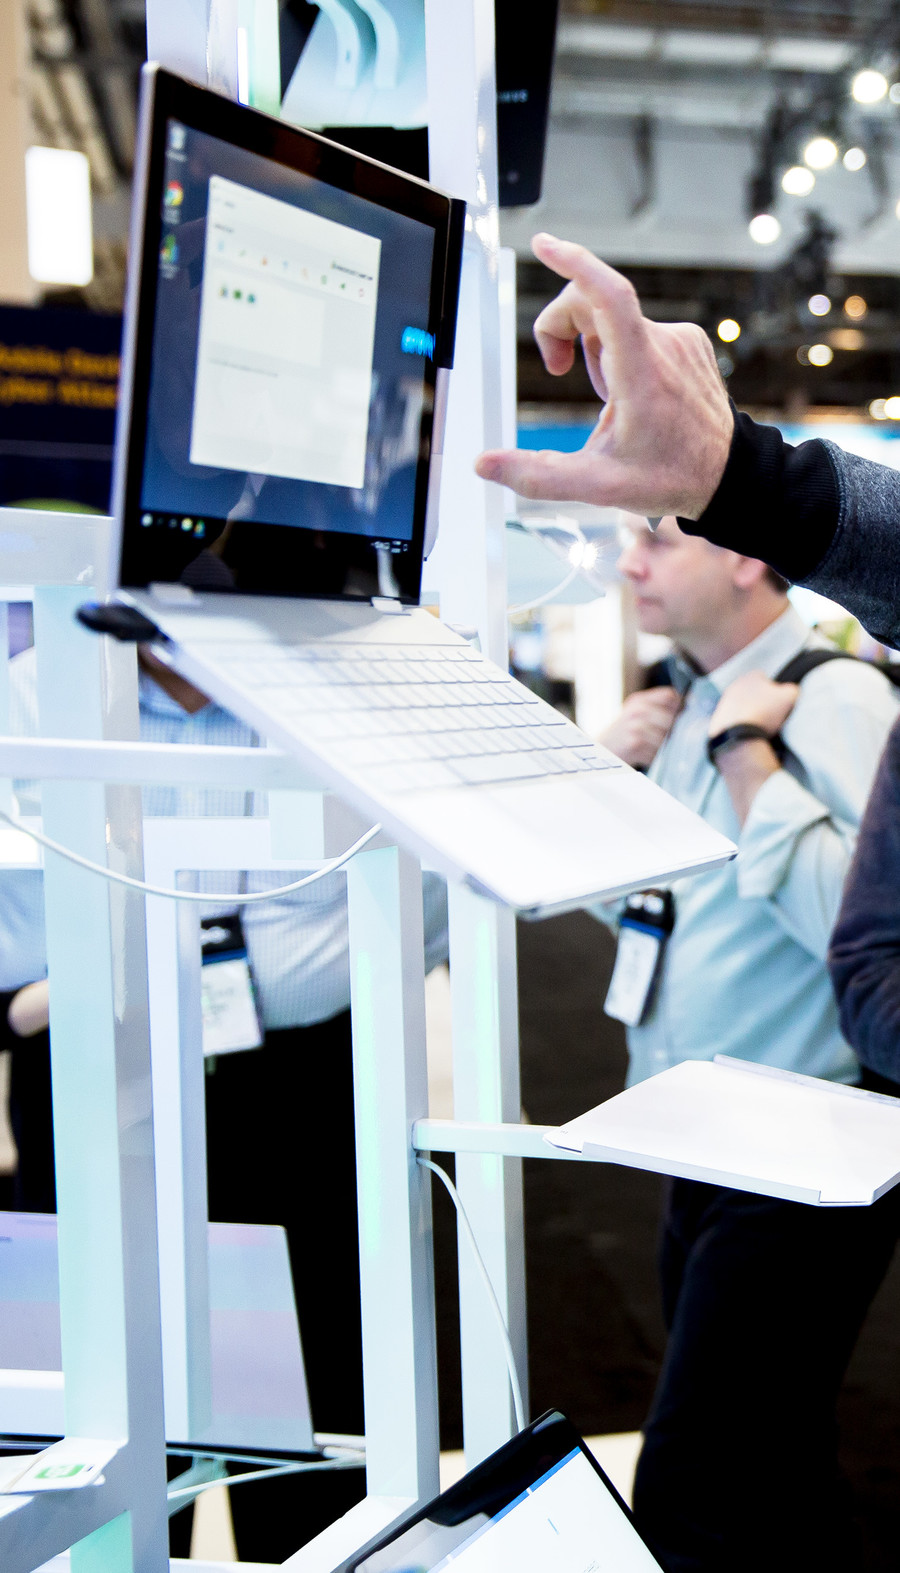 Hustle and Flow: How Organizers Can Drive More Traffic to the Exhibit Hall